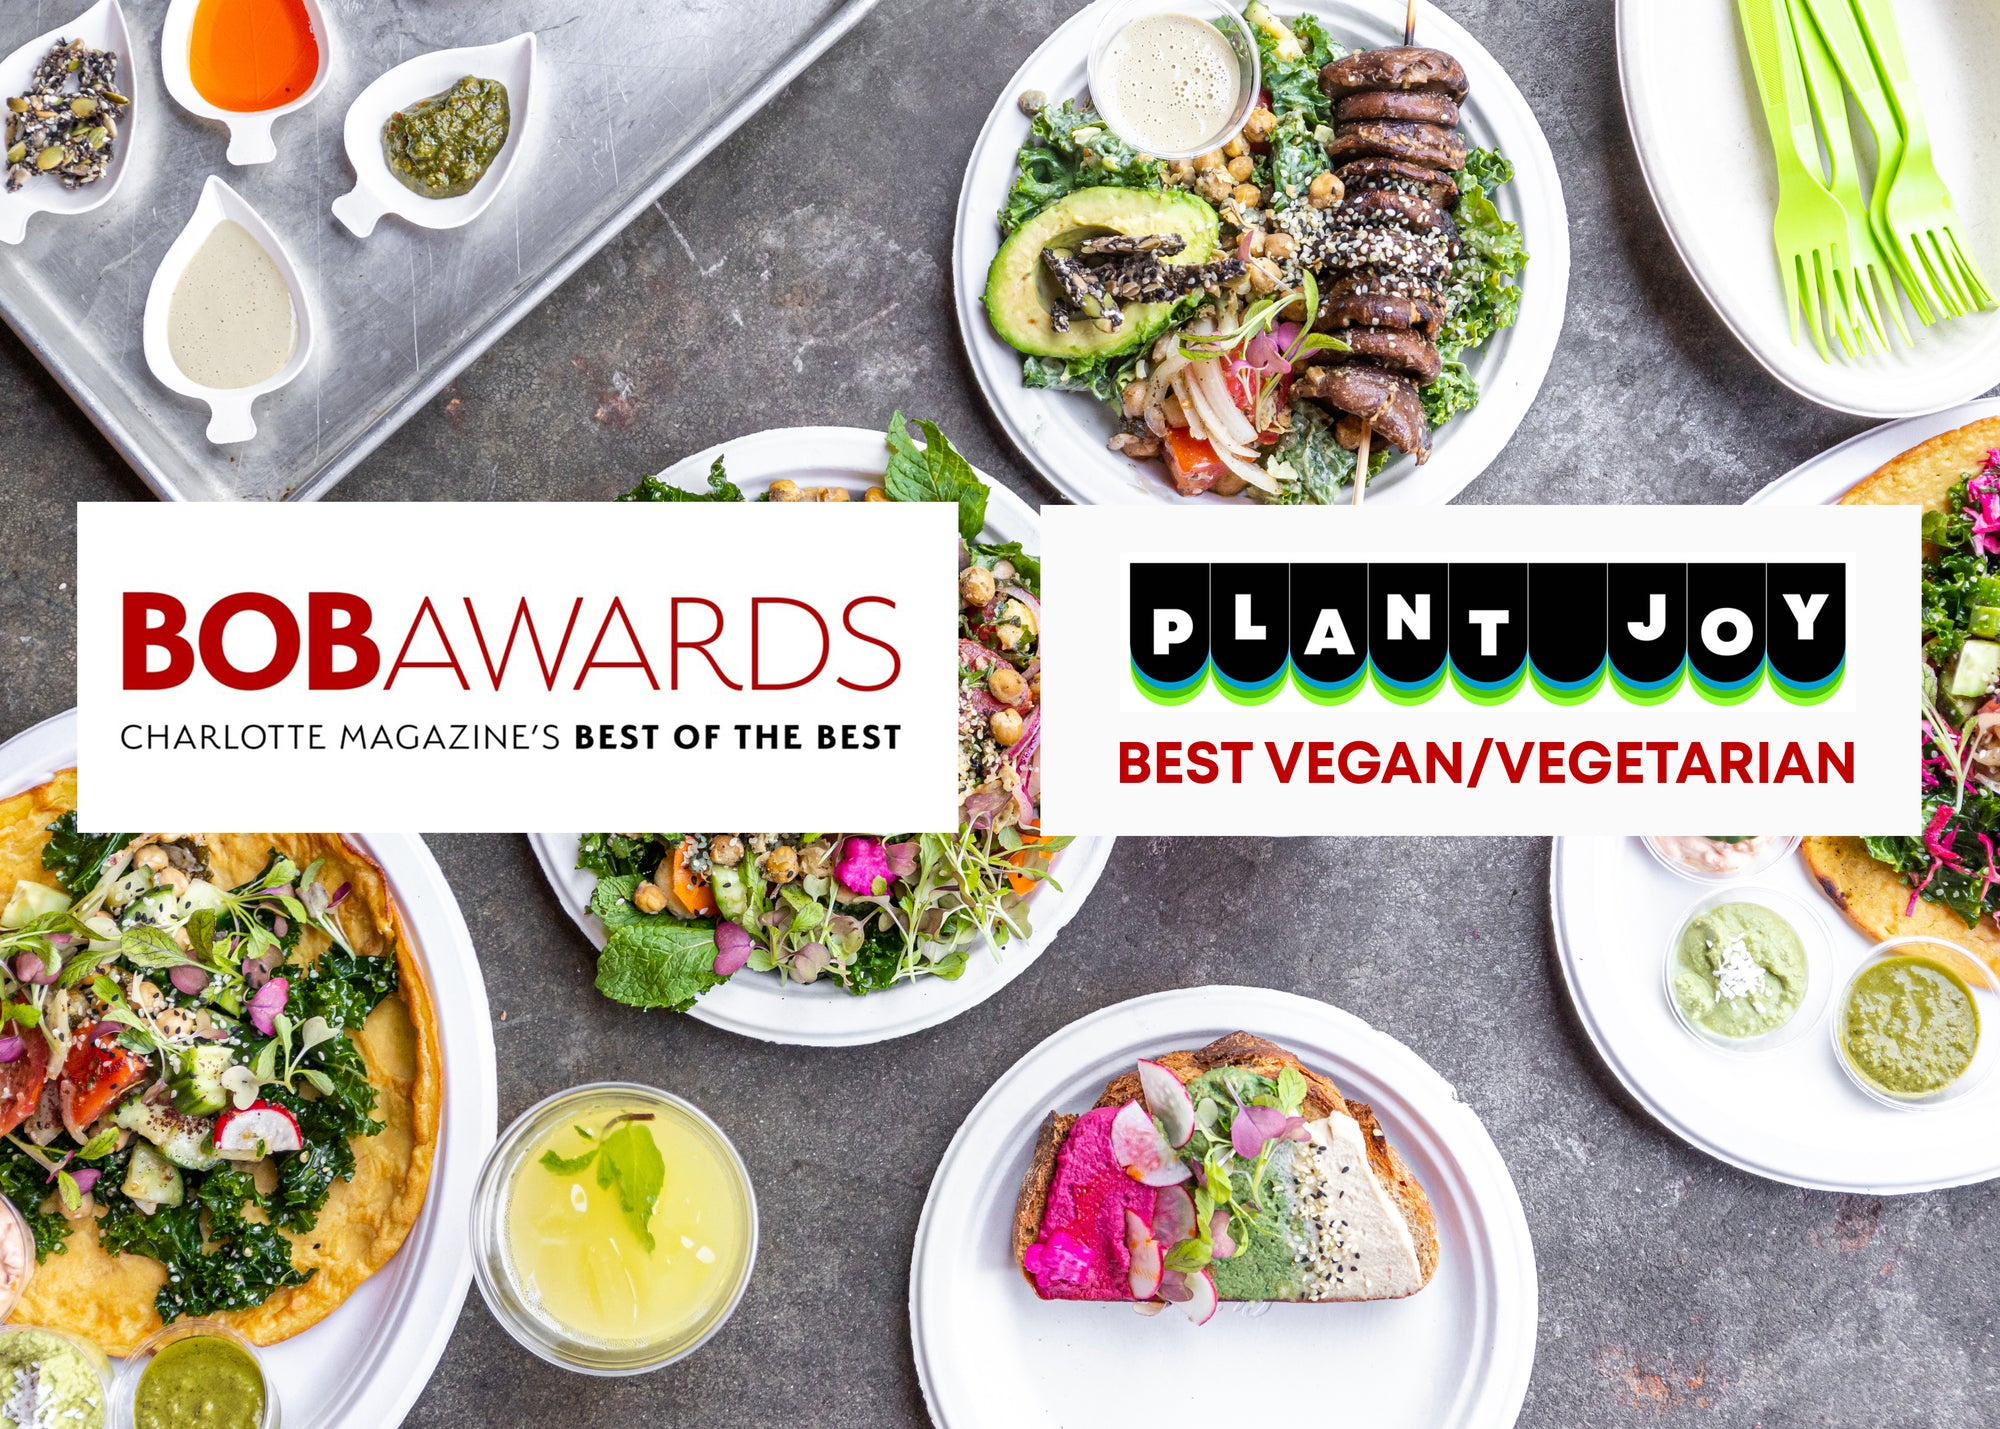 THANK YOU CHARLOTTE! Plant Joy wins Best Vegan/Vegetarian from Charlotte Mag!